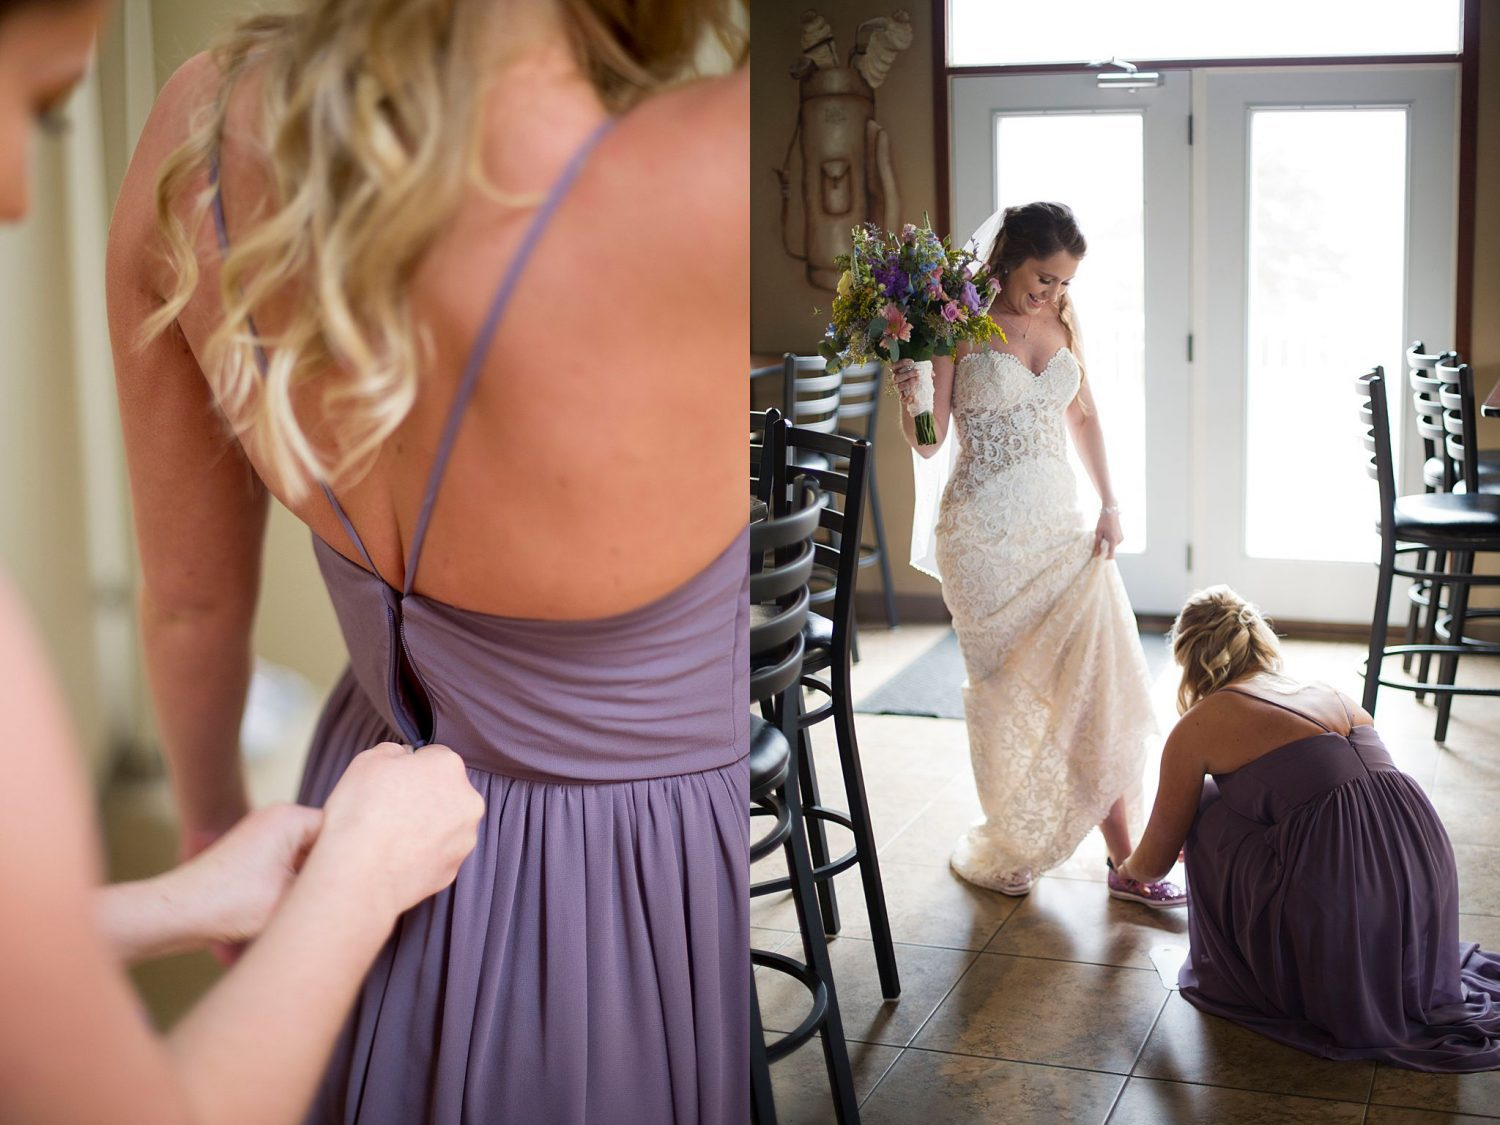 The bride and her bridesmaid help each other get ready.